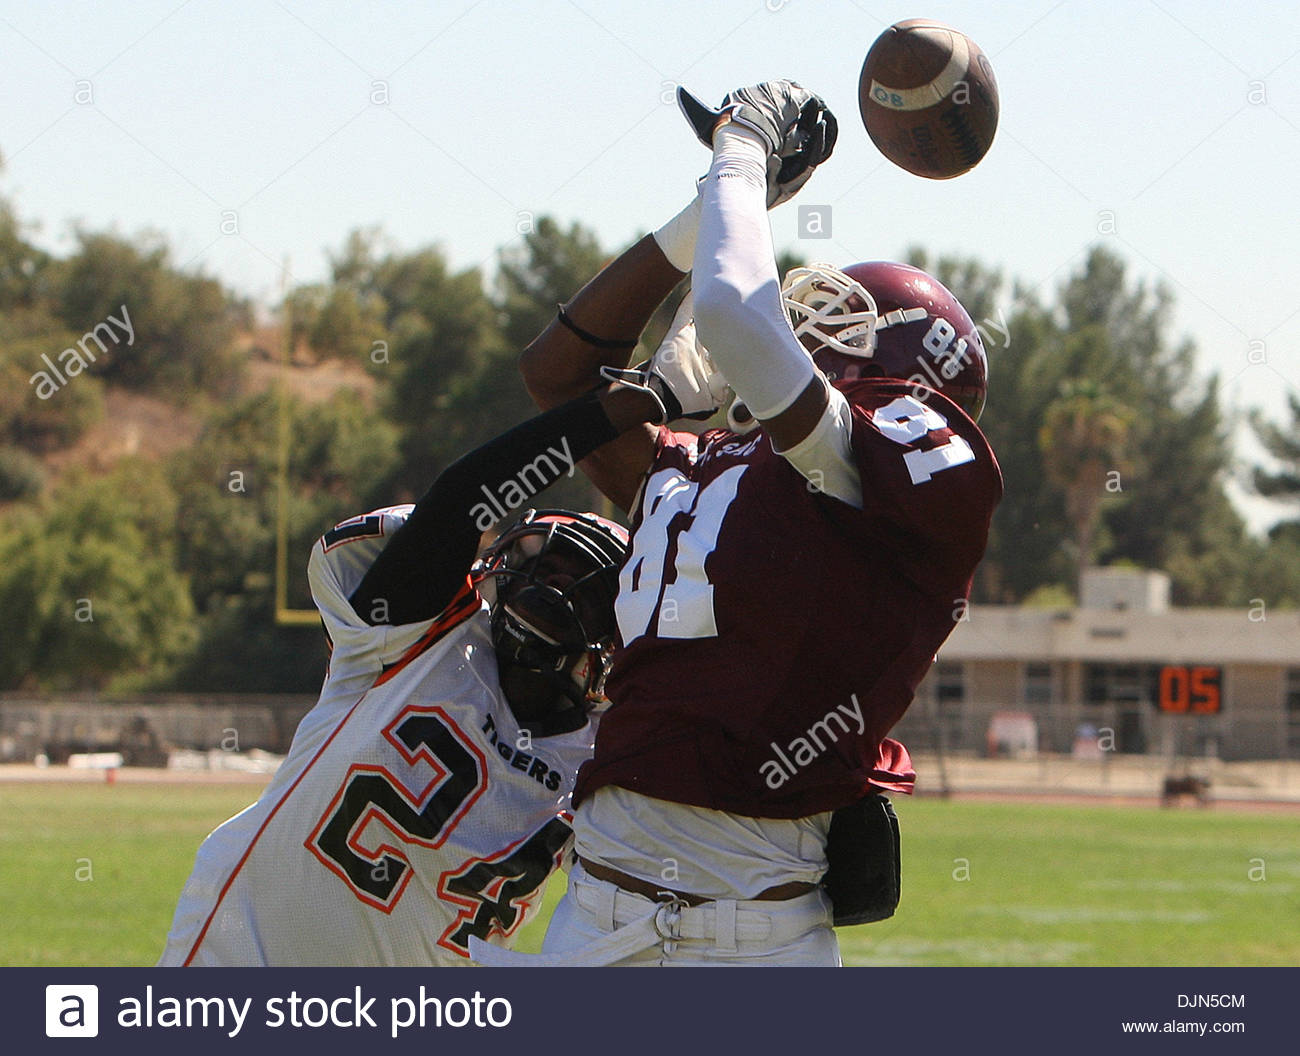 Mar. 20, 2008 - Walnut, California, U.S. - Mt. SAC's Alonzo Agwuenu (81) can't hold onto a pass over Riverside City College's Moses Terron  (24) in the second half as Mt. SAC beat Riverside 38-10 during a football game in Hilmer Lodge Stadum at Mt. San Antonio College , September 25, 2010 in Walnut. (SGVN/Staff Photo by Keith Birmingham/SPORTS) (Credit Image: © San Gabriel Valley T - Stock Image